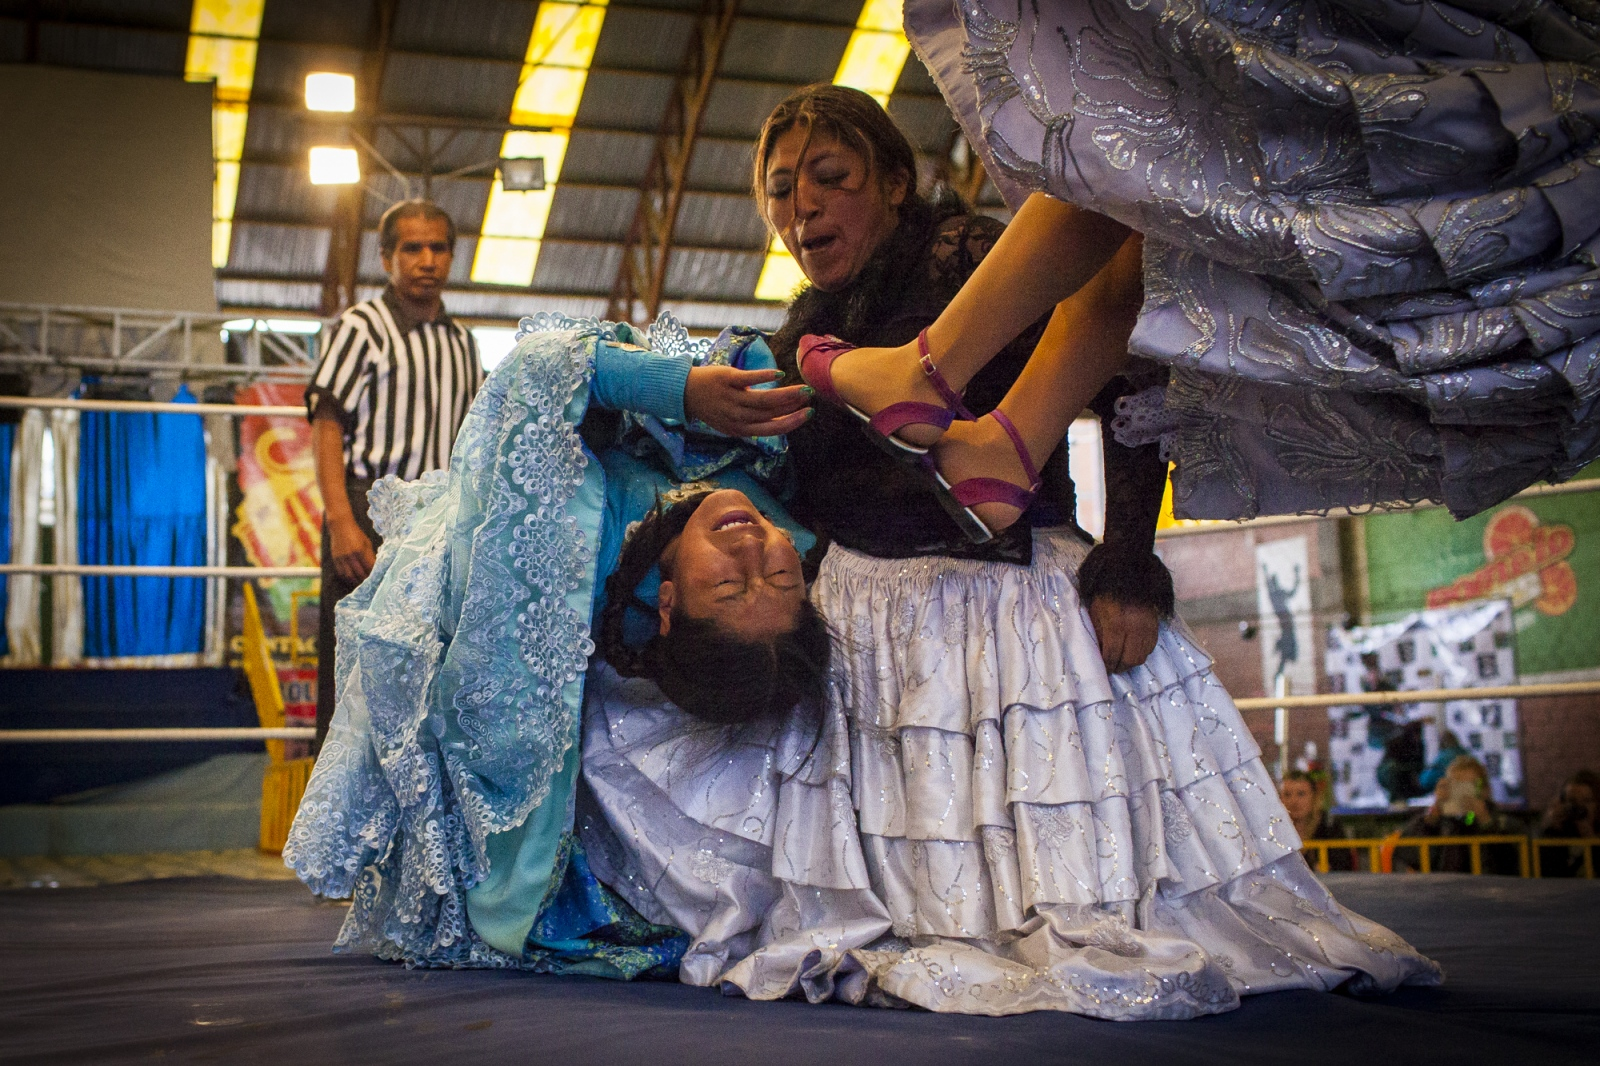 Juanita La Cariñosa and Simpática Sónia, 21, (Nice Sonia) punish Jennifer Dos Caras (Two Faces), 16, during a fight on the 12th October Sports Complex in El Alto. Sometimes fights are fought in pairs, being one team the bad and the other the good one. As in many other stories, most of the times the good side tends to win in the fight at the end after suffering a lot.